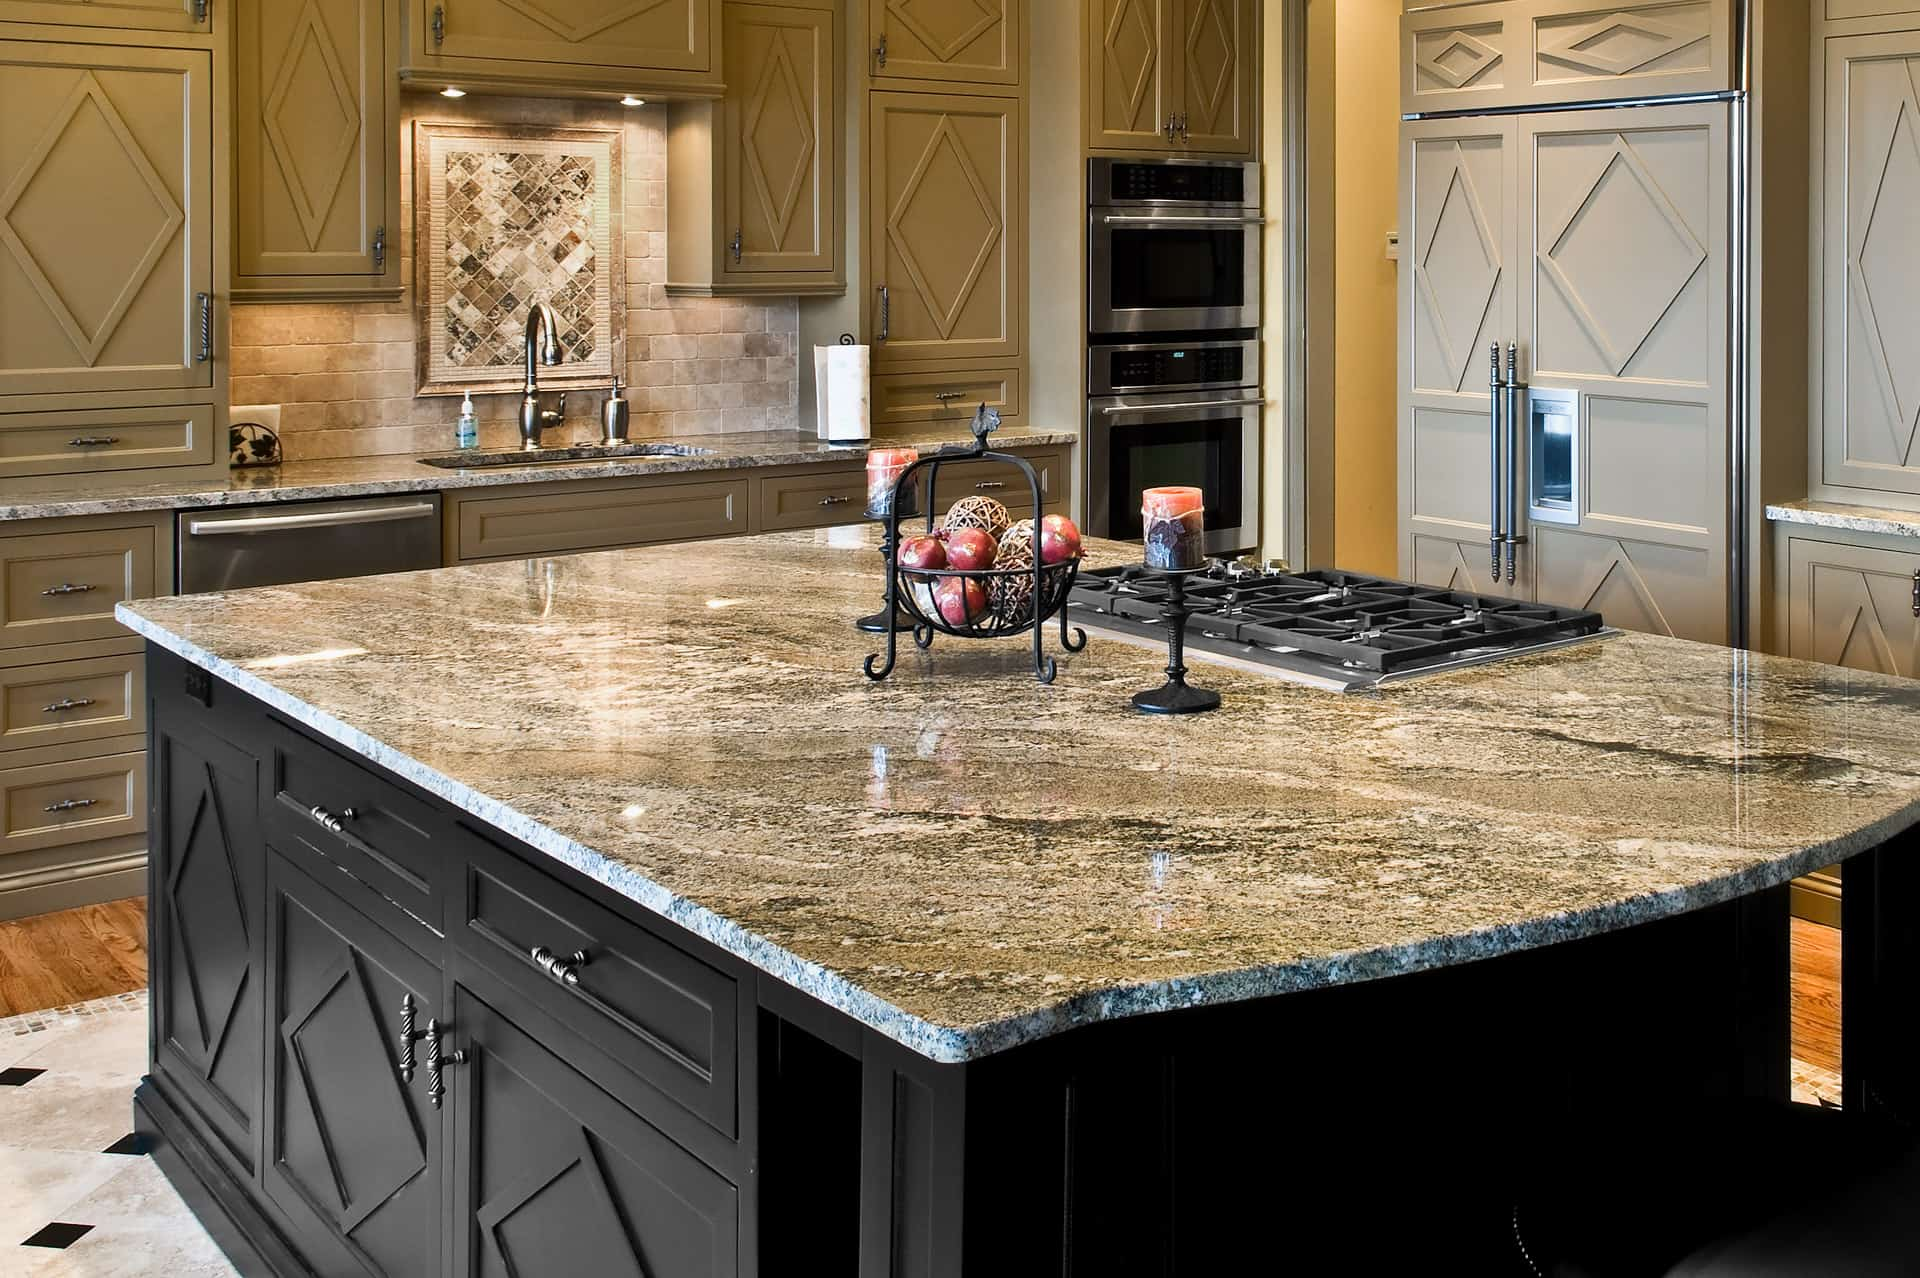 Granite Stone For Kitchen The Benefits Of Engineered Stone Countertops Countertop Guides